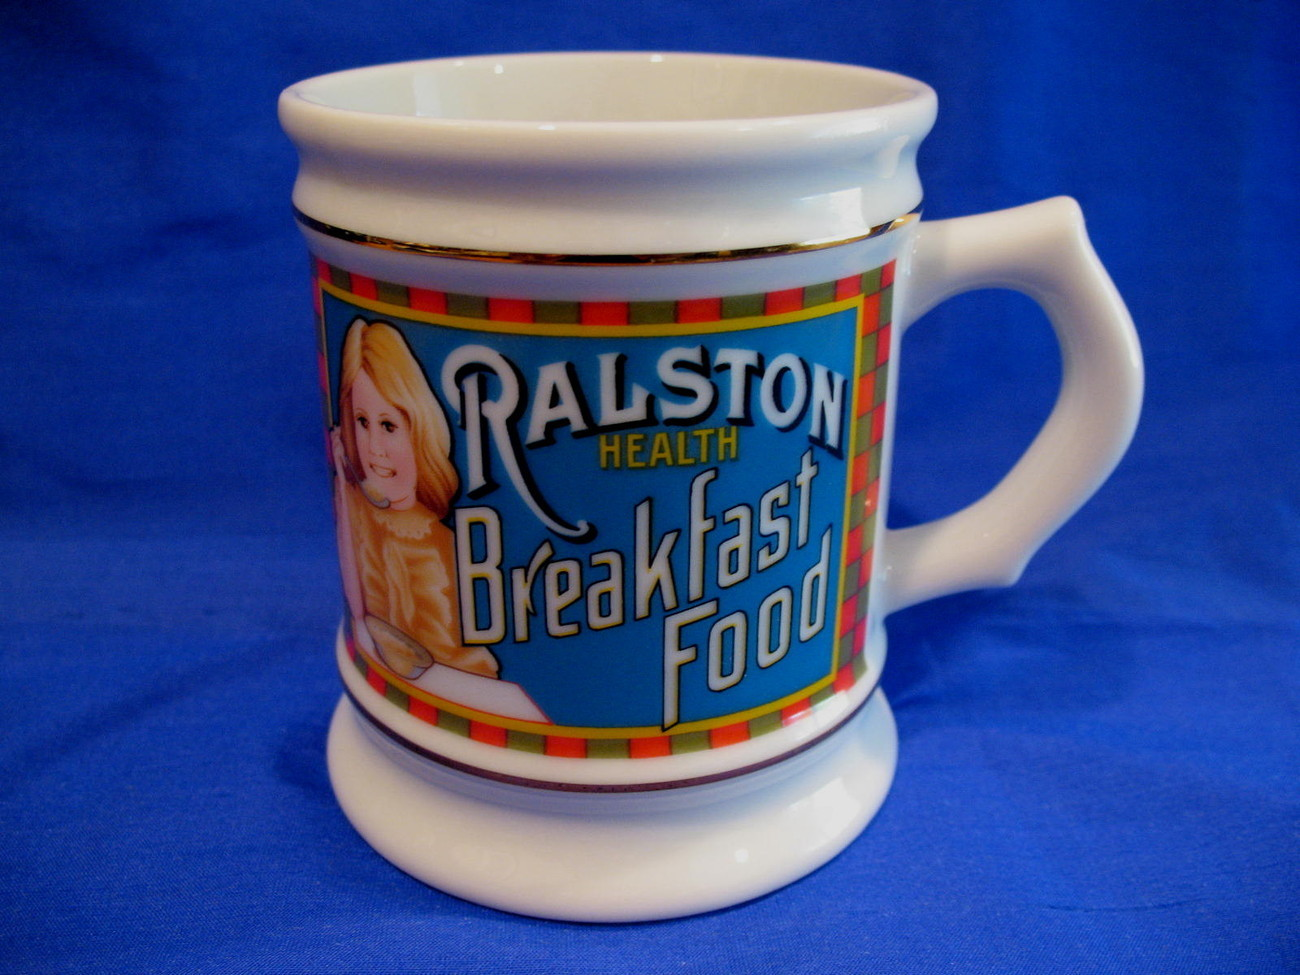 Ralston Purina Cereals Coffee Mug Tea Cup Souvenir Collectible Advertising